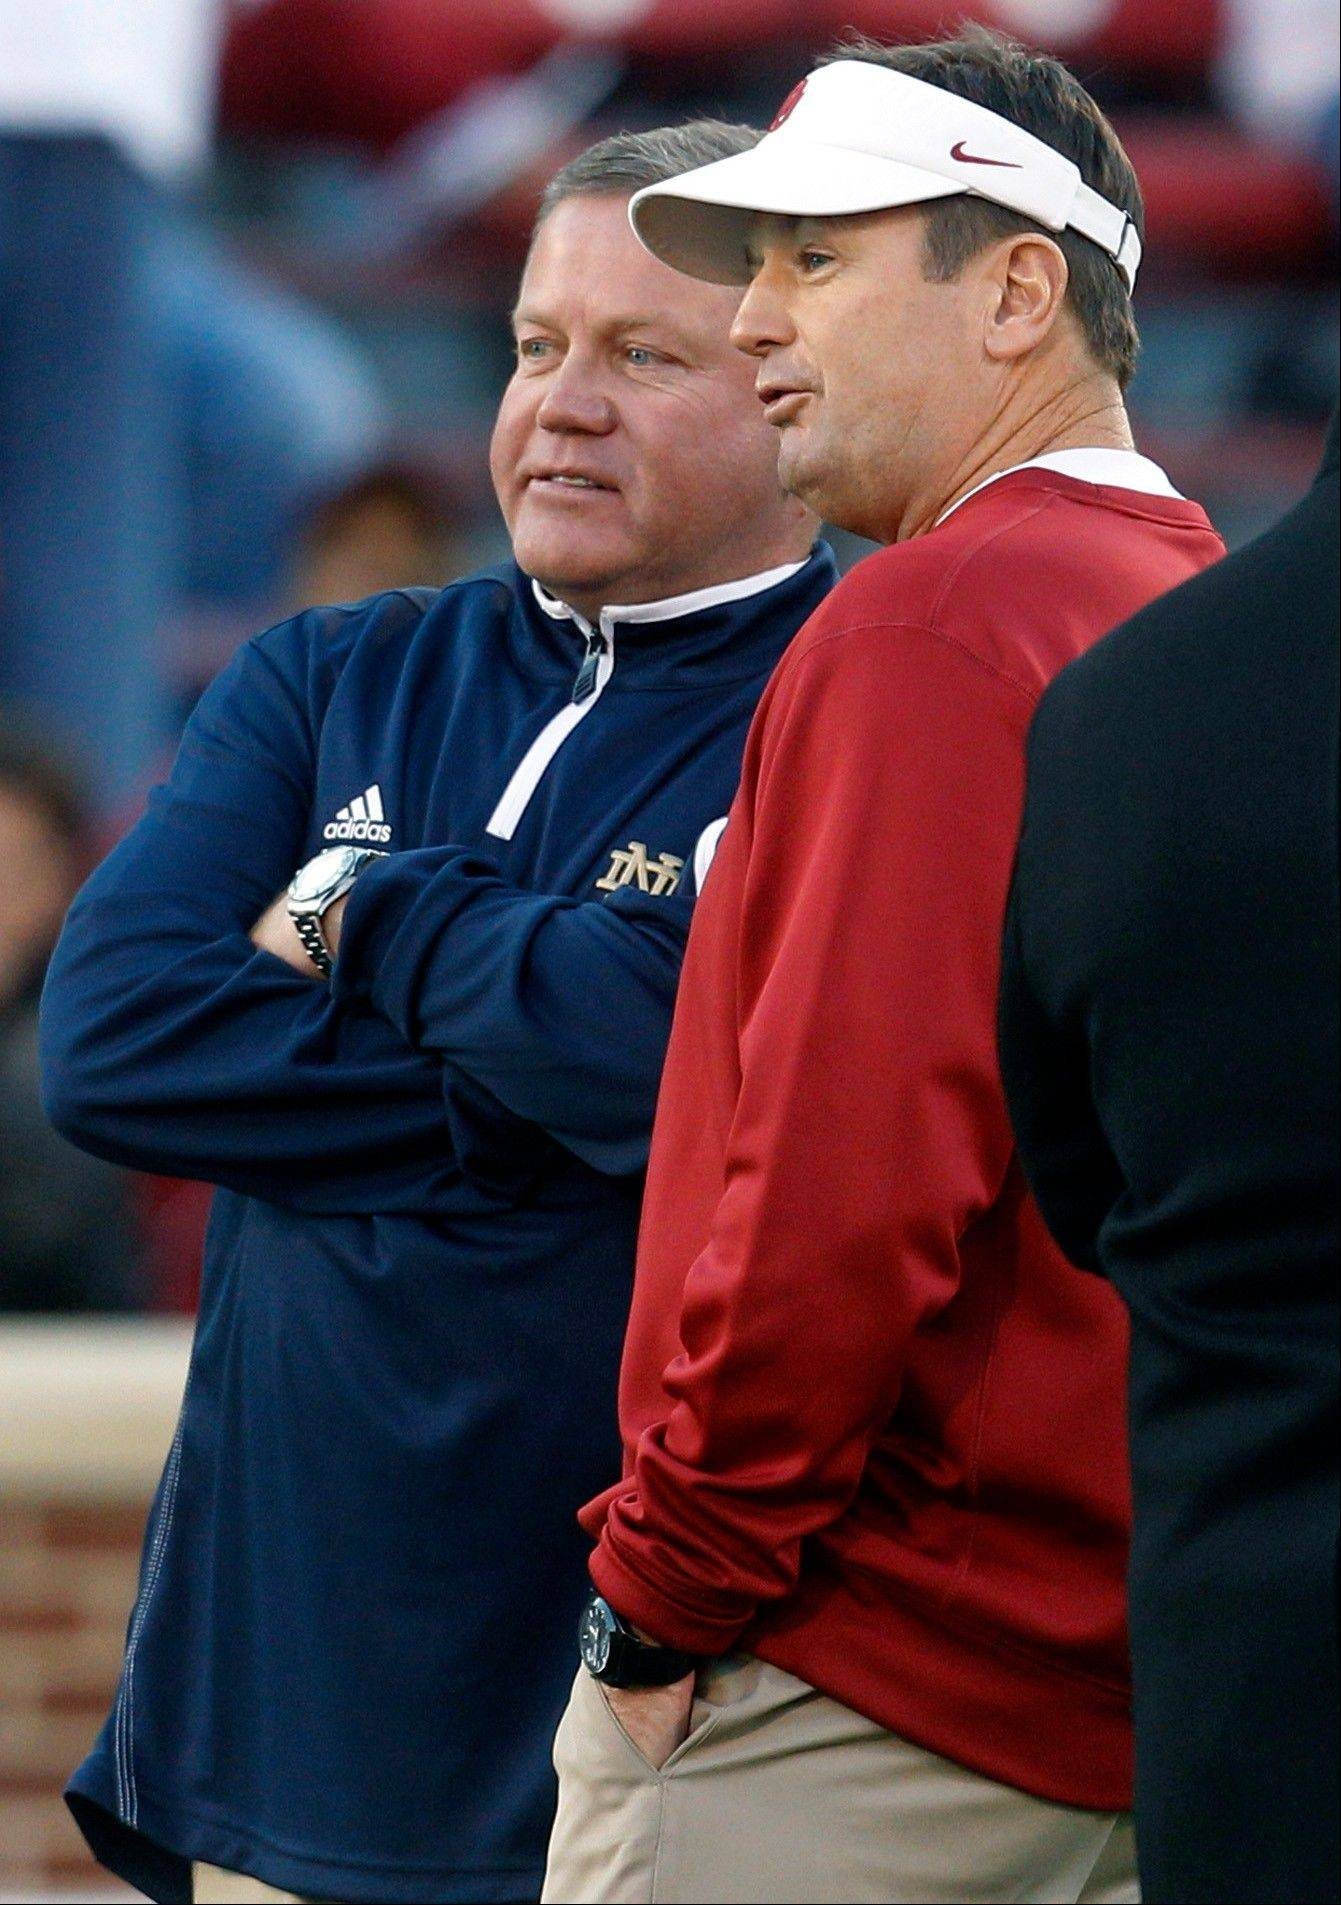 National writer John Feinstein says Notre Dame head coach Brian Kelly's team is for real, while Oklahoma head coach Bob Stoops continues to struggle against ranked teams.